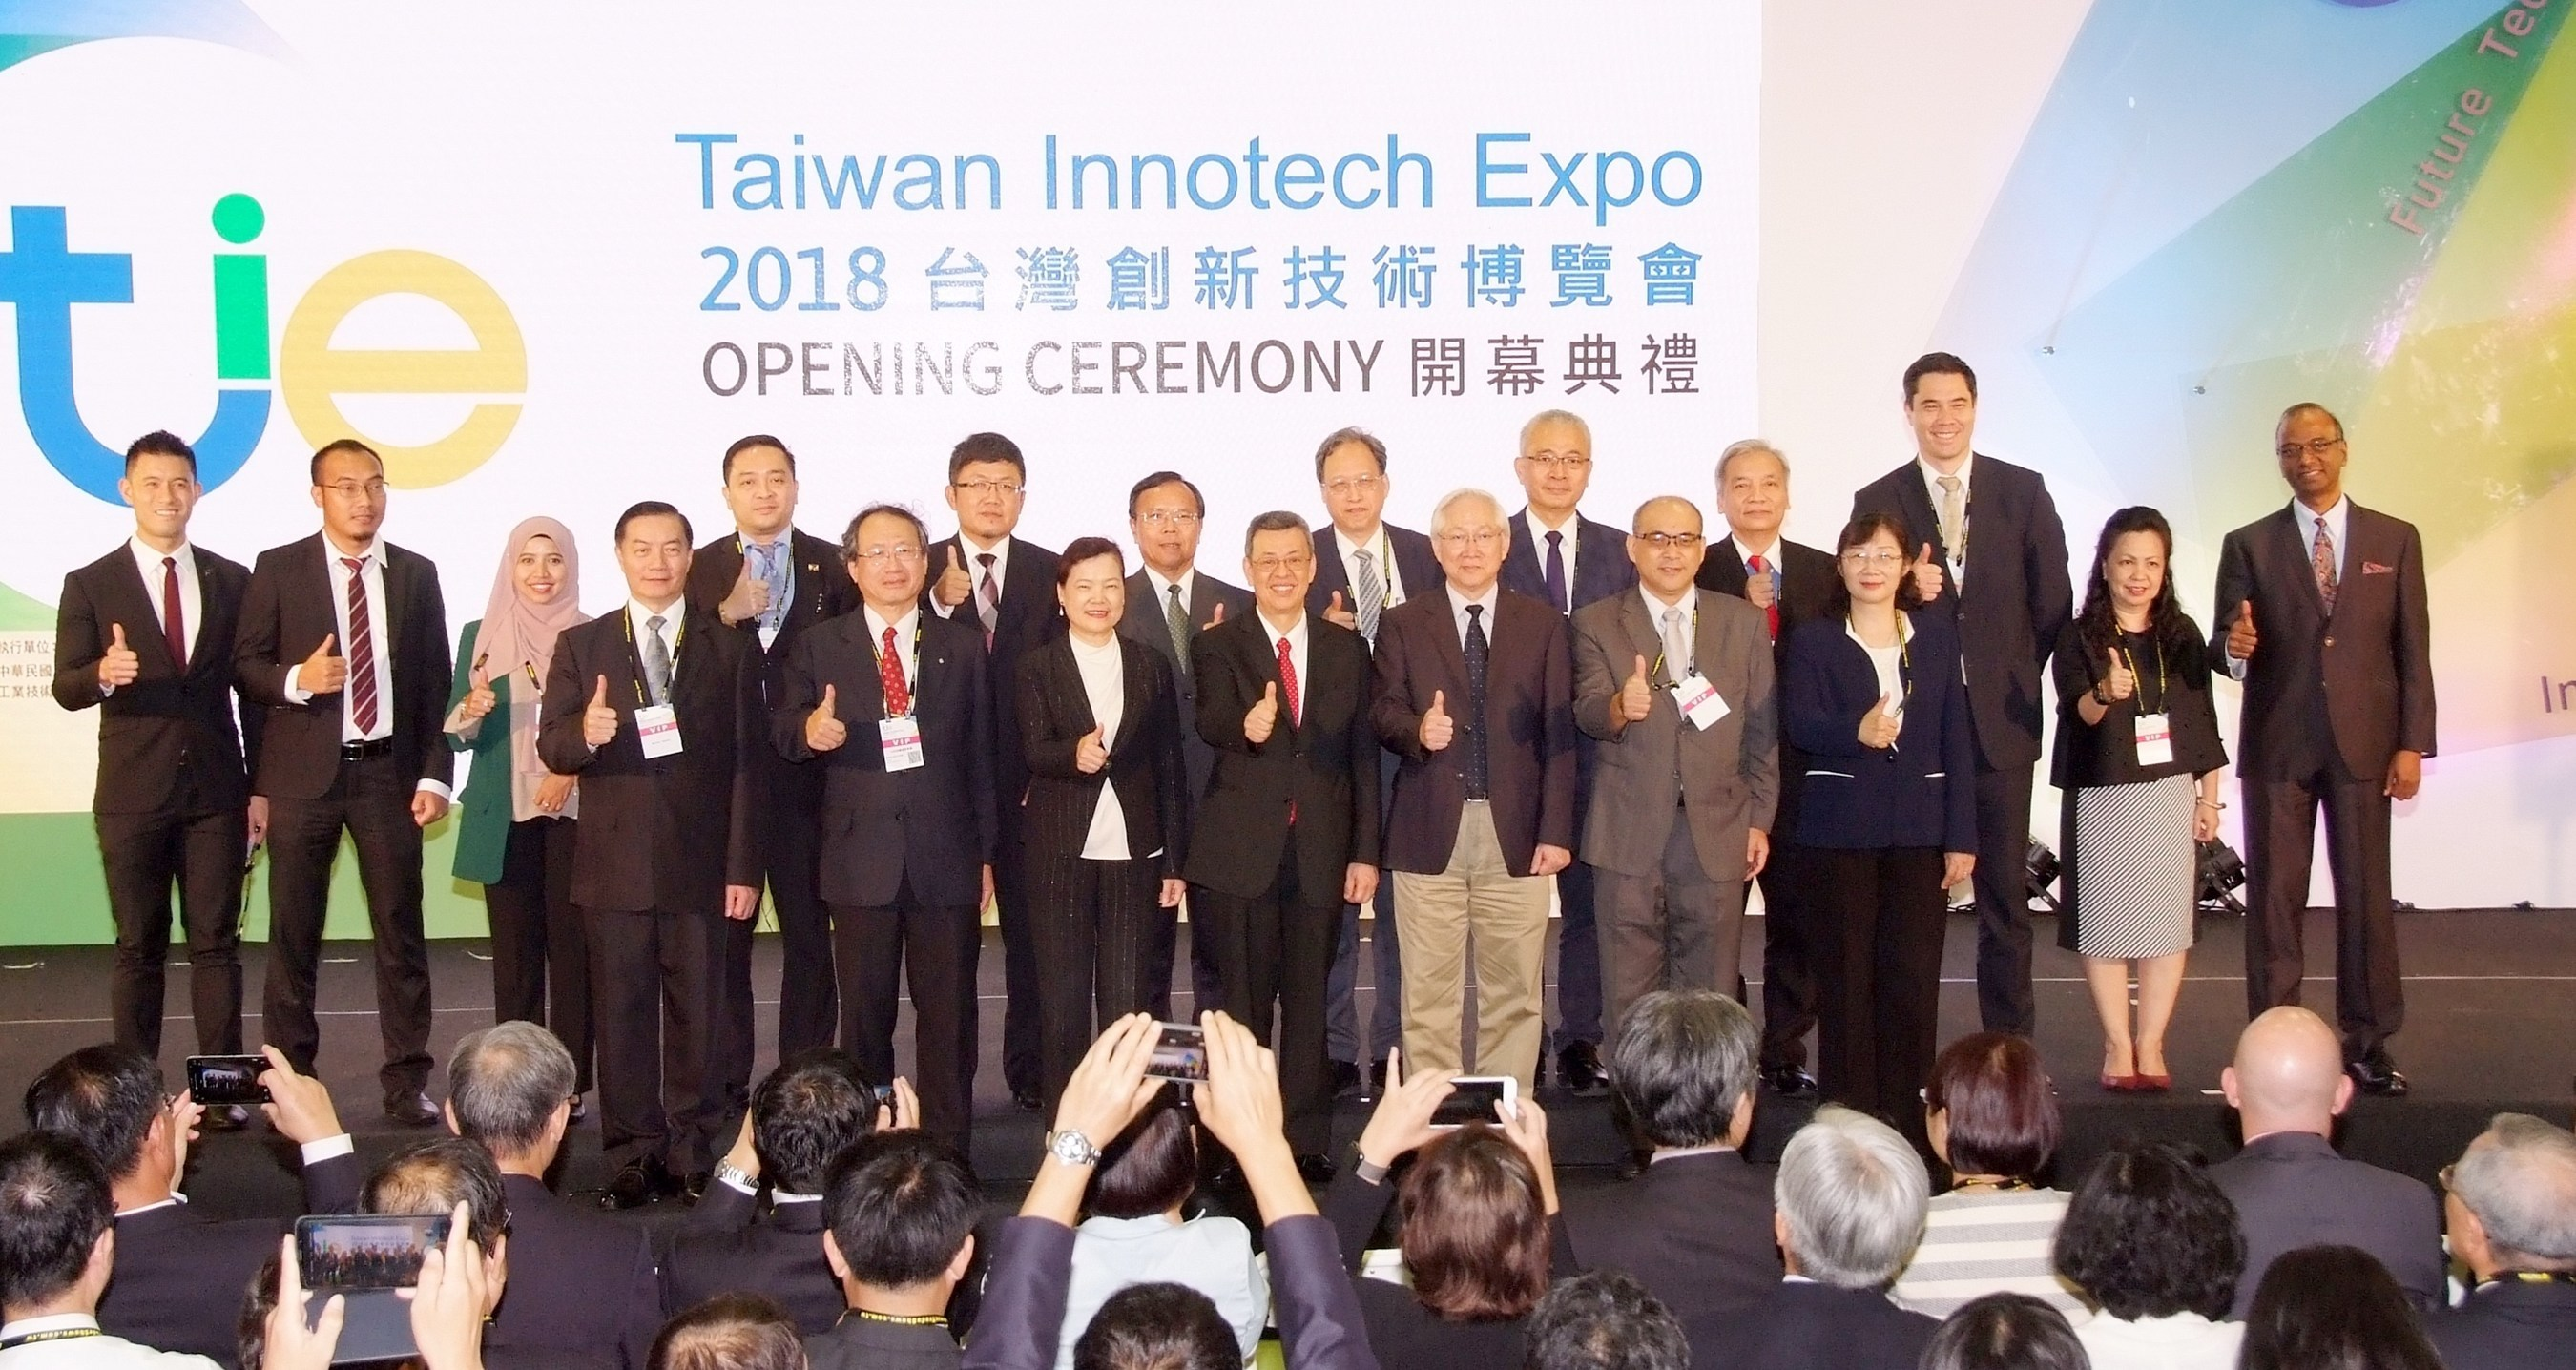 Held during 27-29th of this September at Taipei World Trade Center, TIE 2018 presented more than 1,000 different technology patents and innovative solutions.